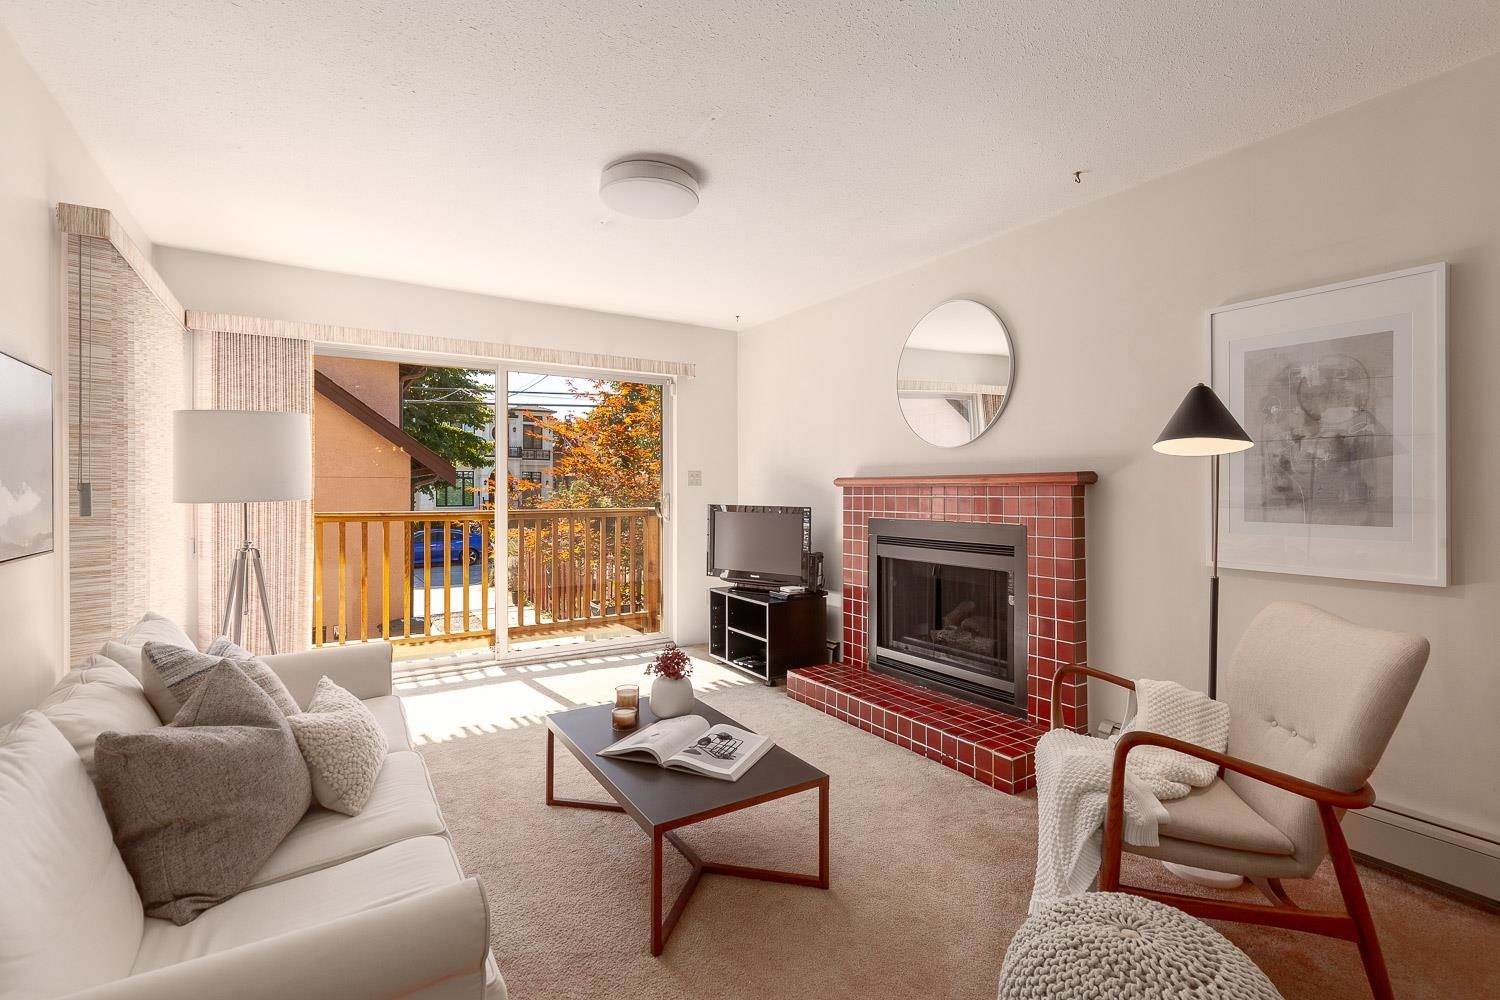 Main Photo: 3255 WALLACE Street in Vancouver: Dunbar House for sale (Vancouver West)  : MLS®# R2615329